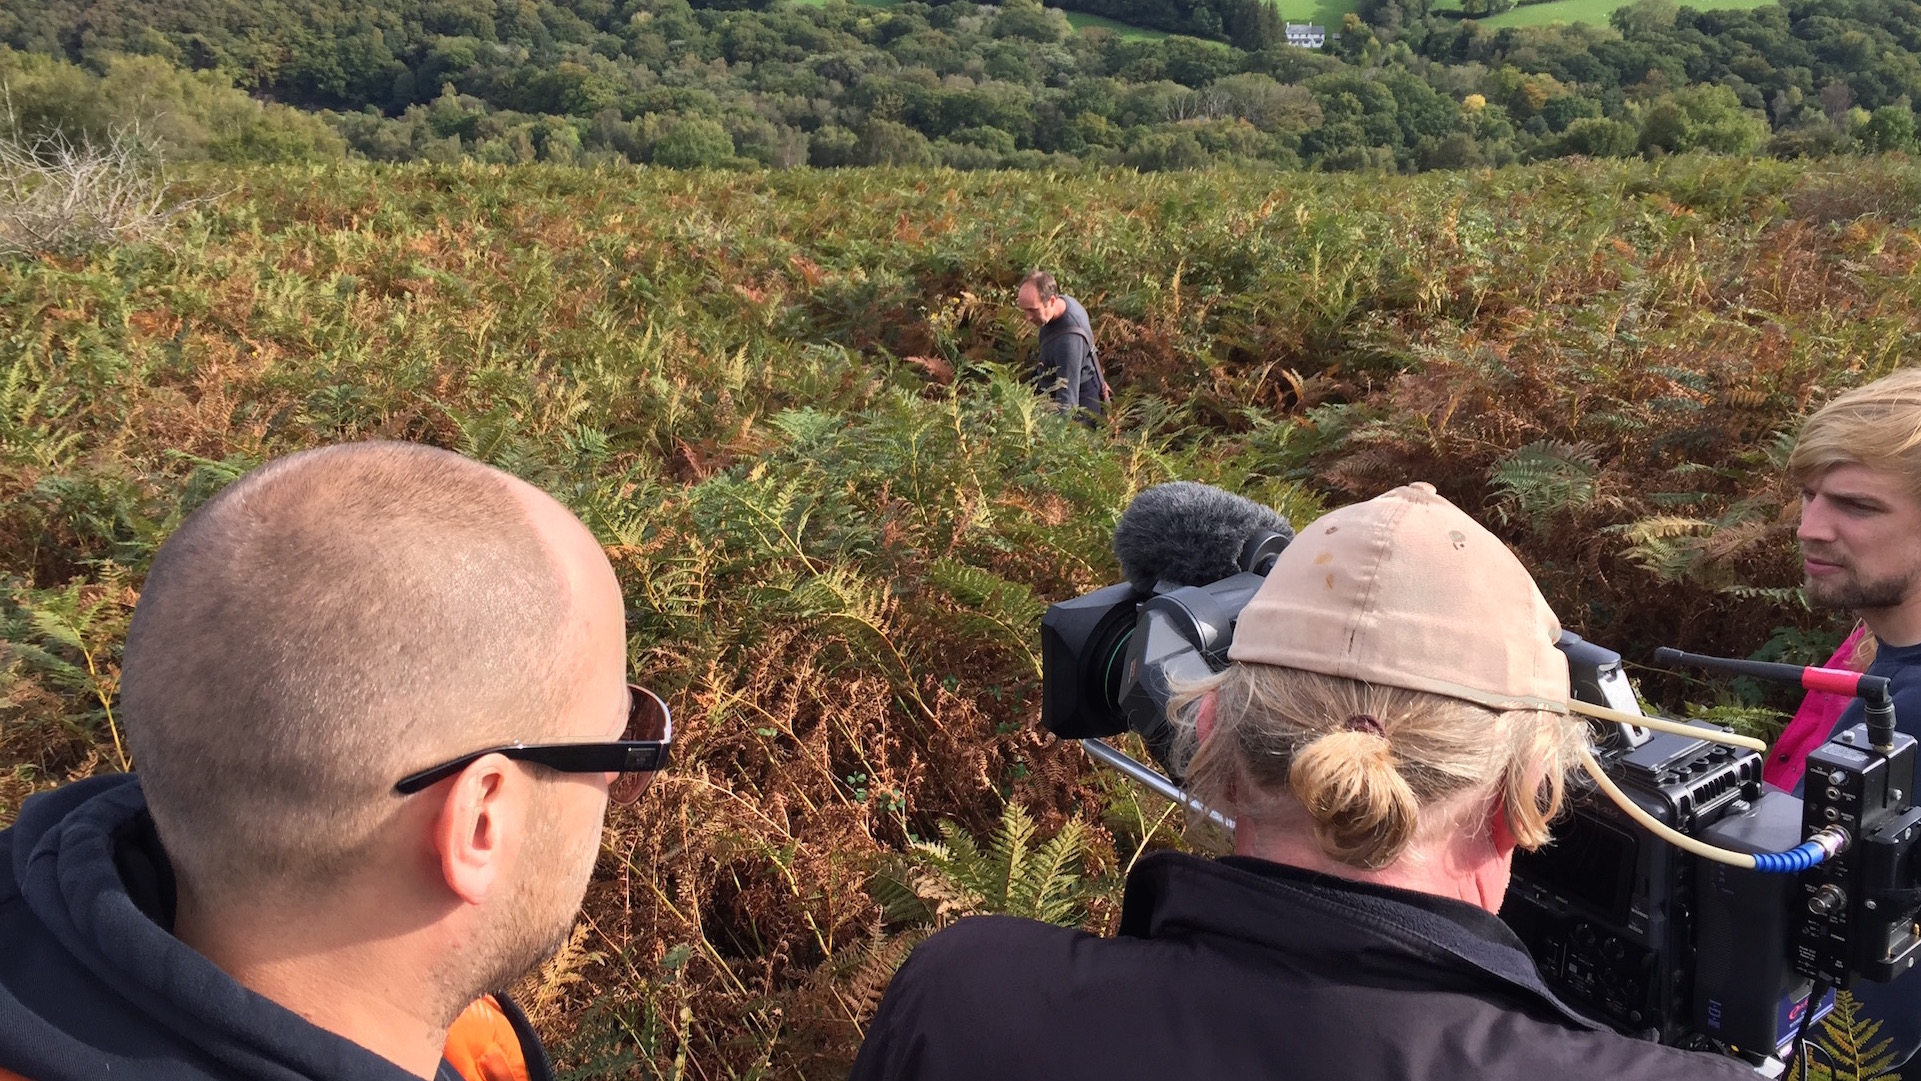 Will Johnson from Wired sets up a shot for 'The Good Dinosaur - Access All Areas' Filmed in Dartmoor